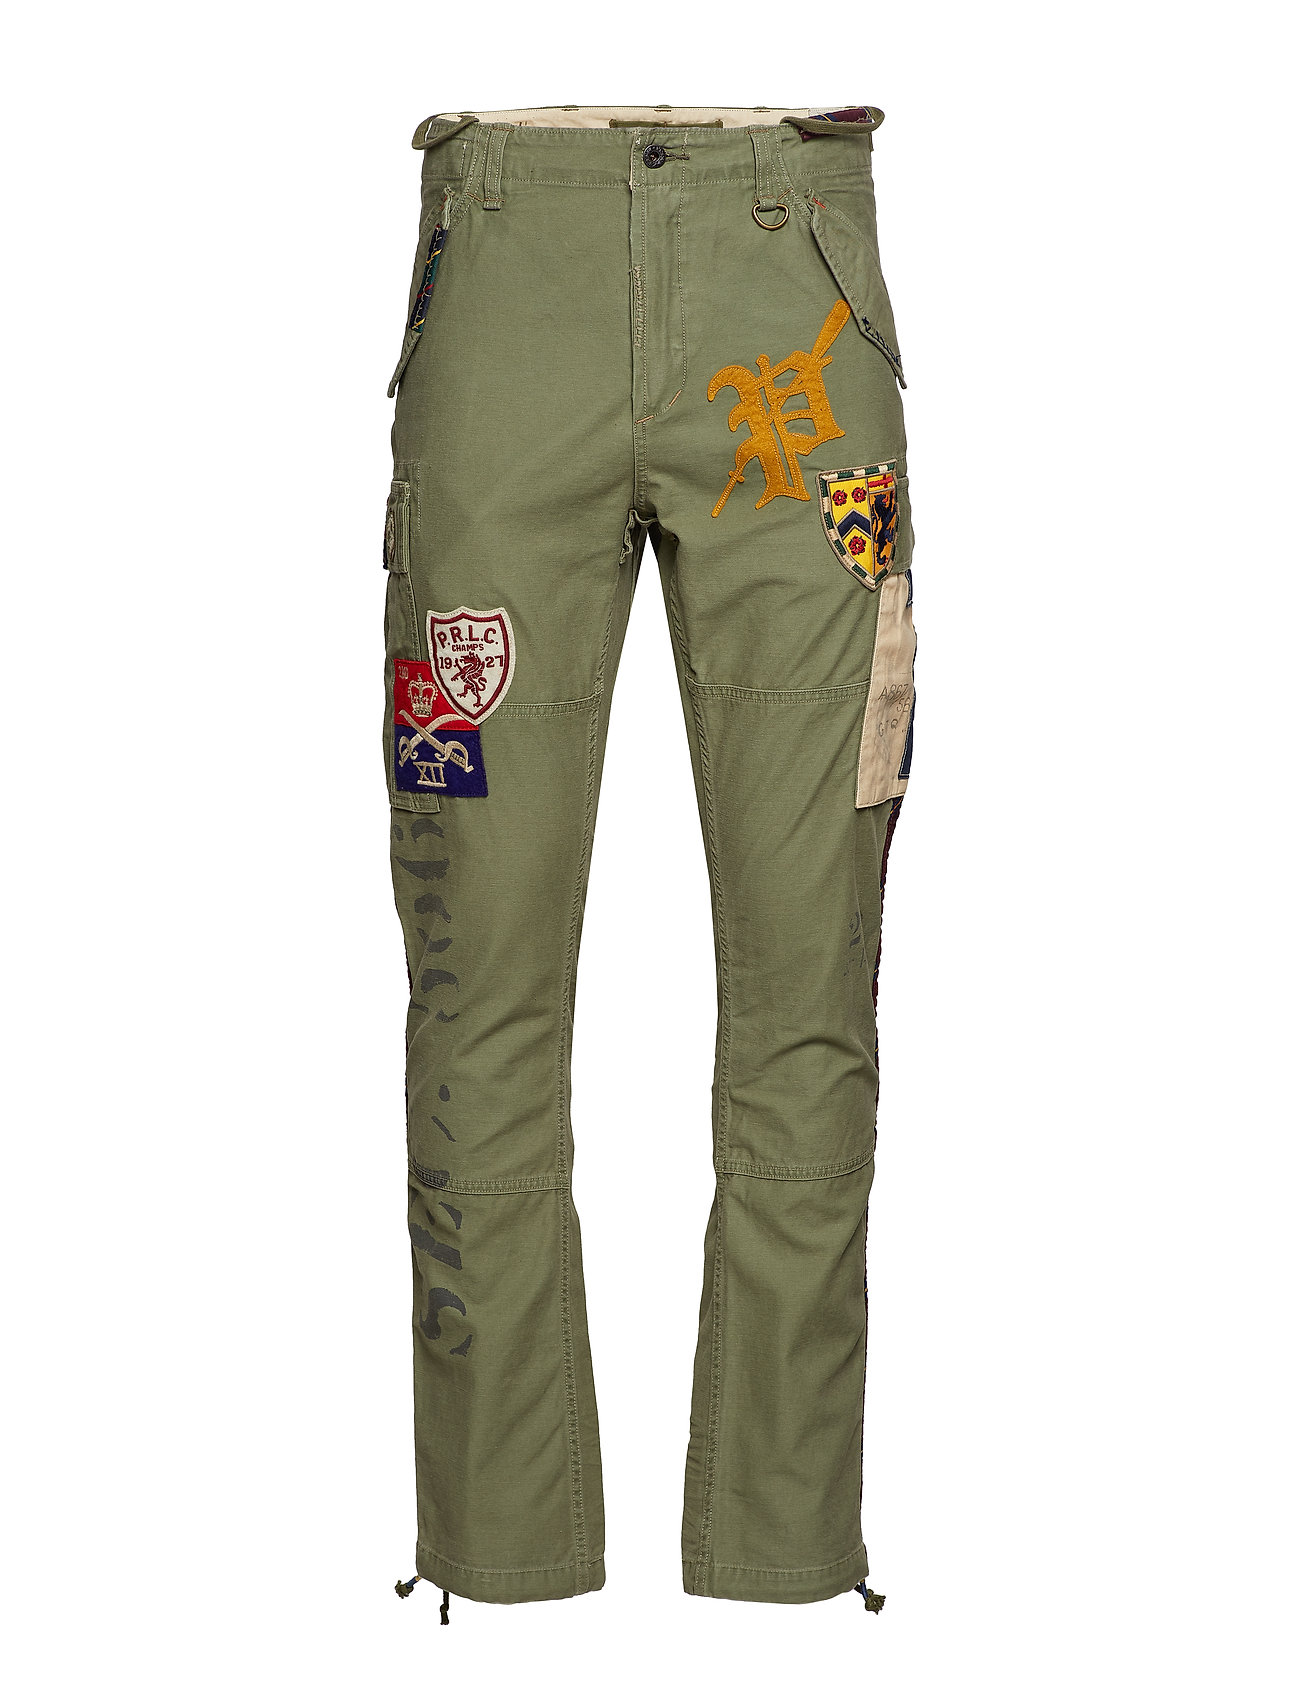 18c30b482 Classic Tapered Fit Cargo Pant (Army Olive) (£235) - Polo Ralph ...